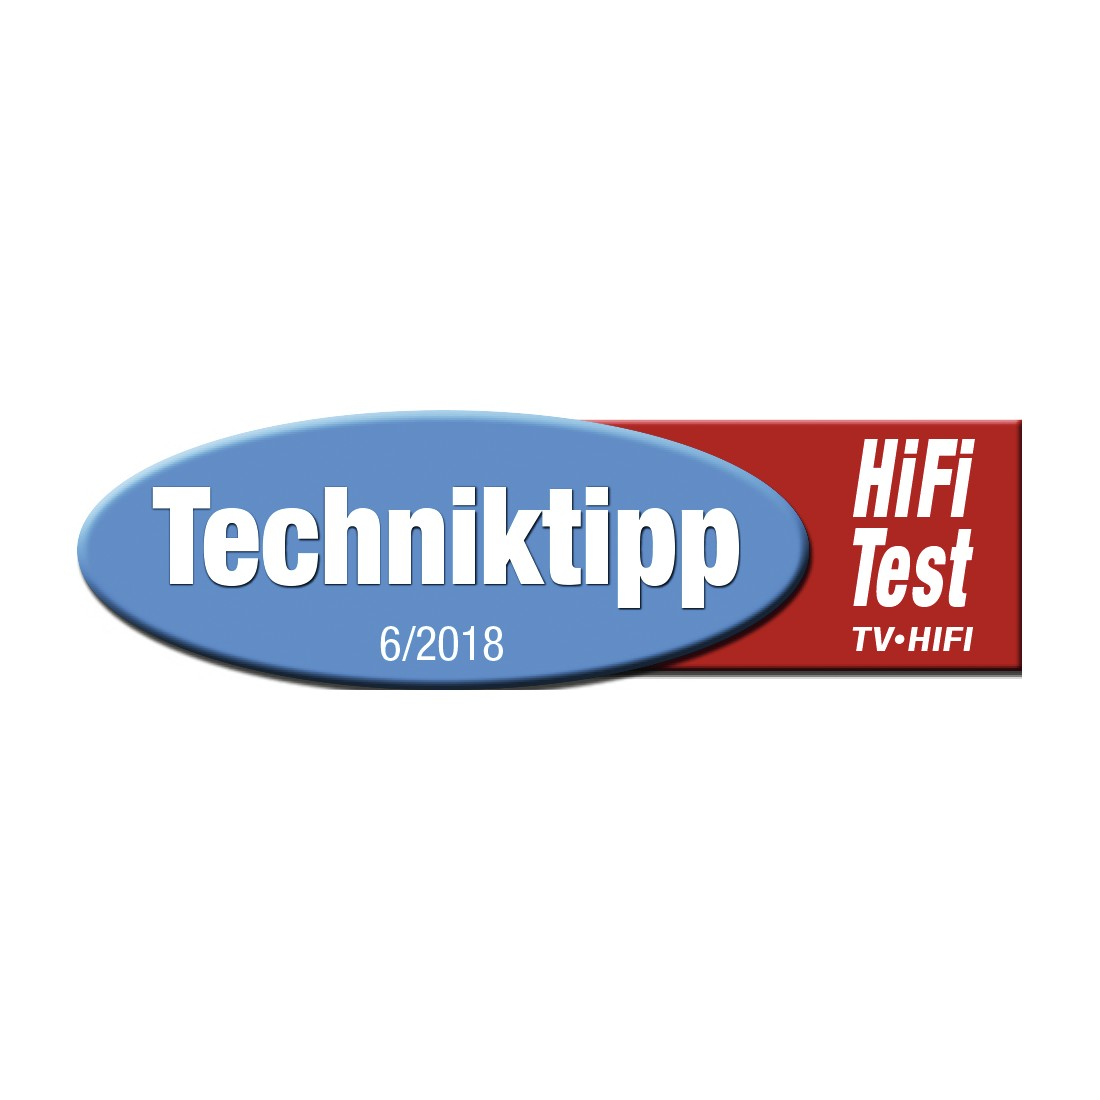 tex5 Druckfähiges Testurteil 5 - Avinity, Optical, Active HDMI™ Cable, ultra-thin, plug-plug, gold-plated, 100m